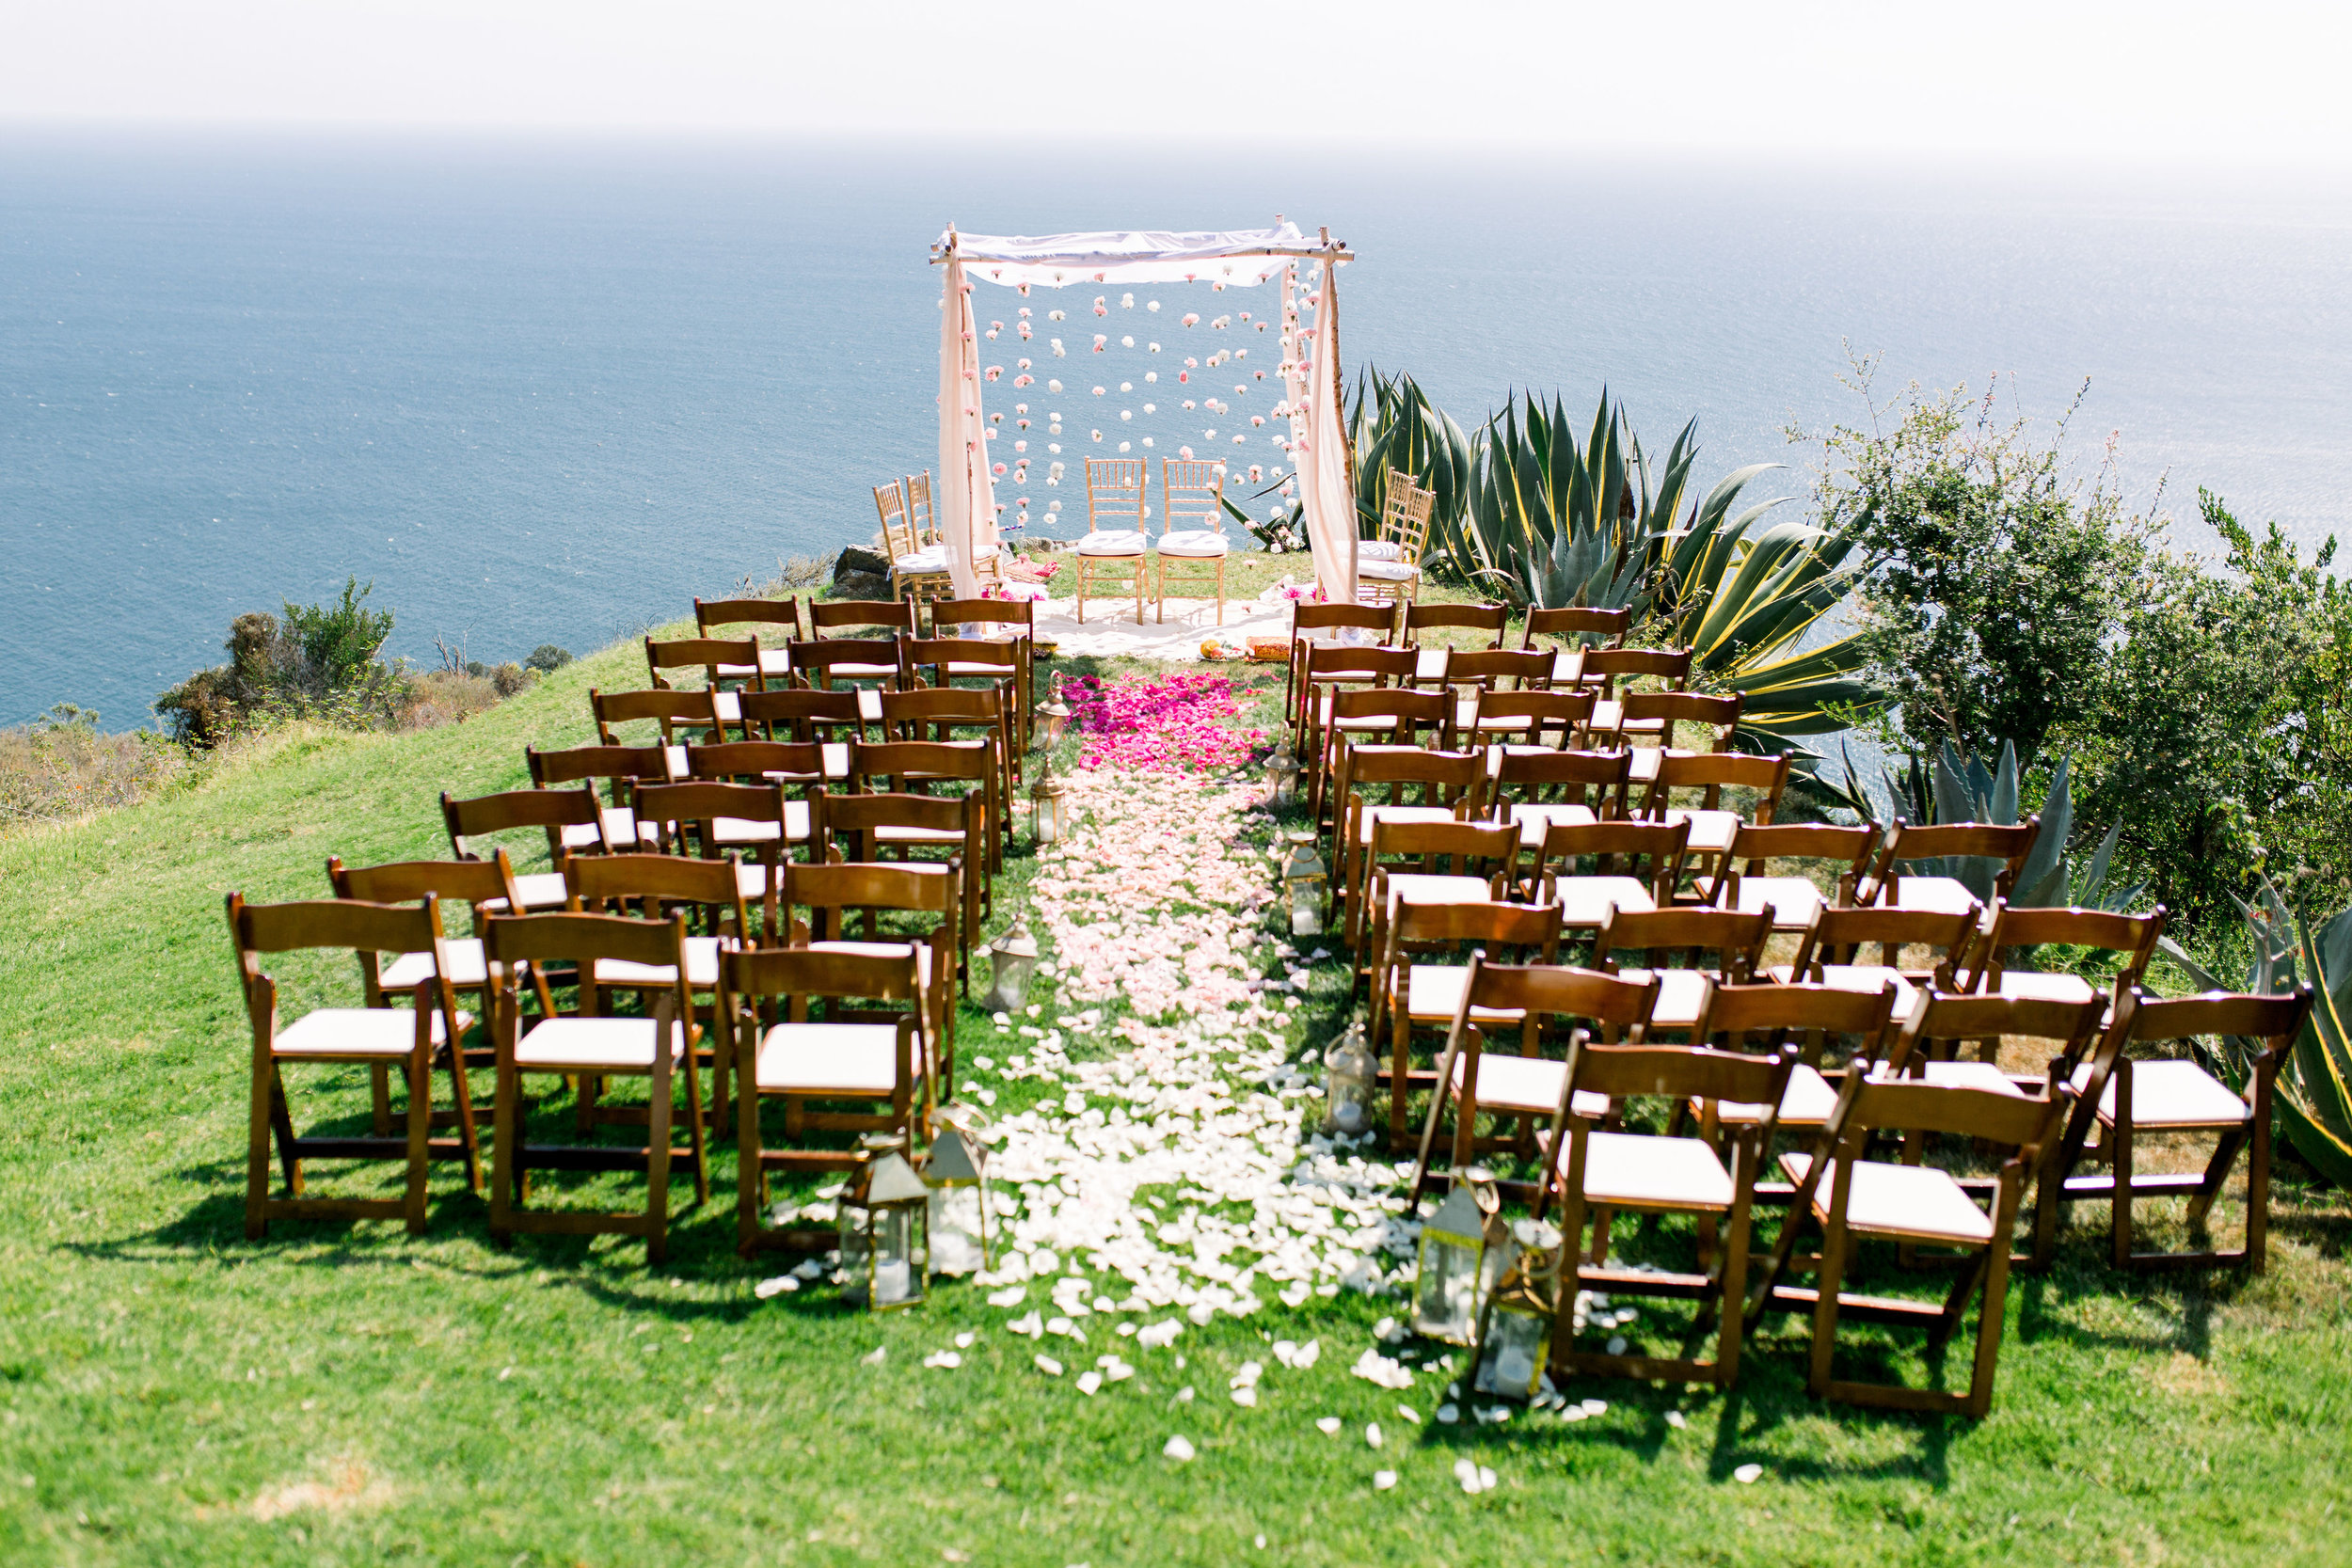 We are sure you understand how our jaws hit the floor when we saw this beautiful ceremony setup.